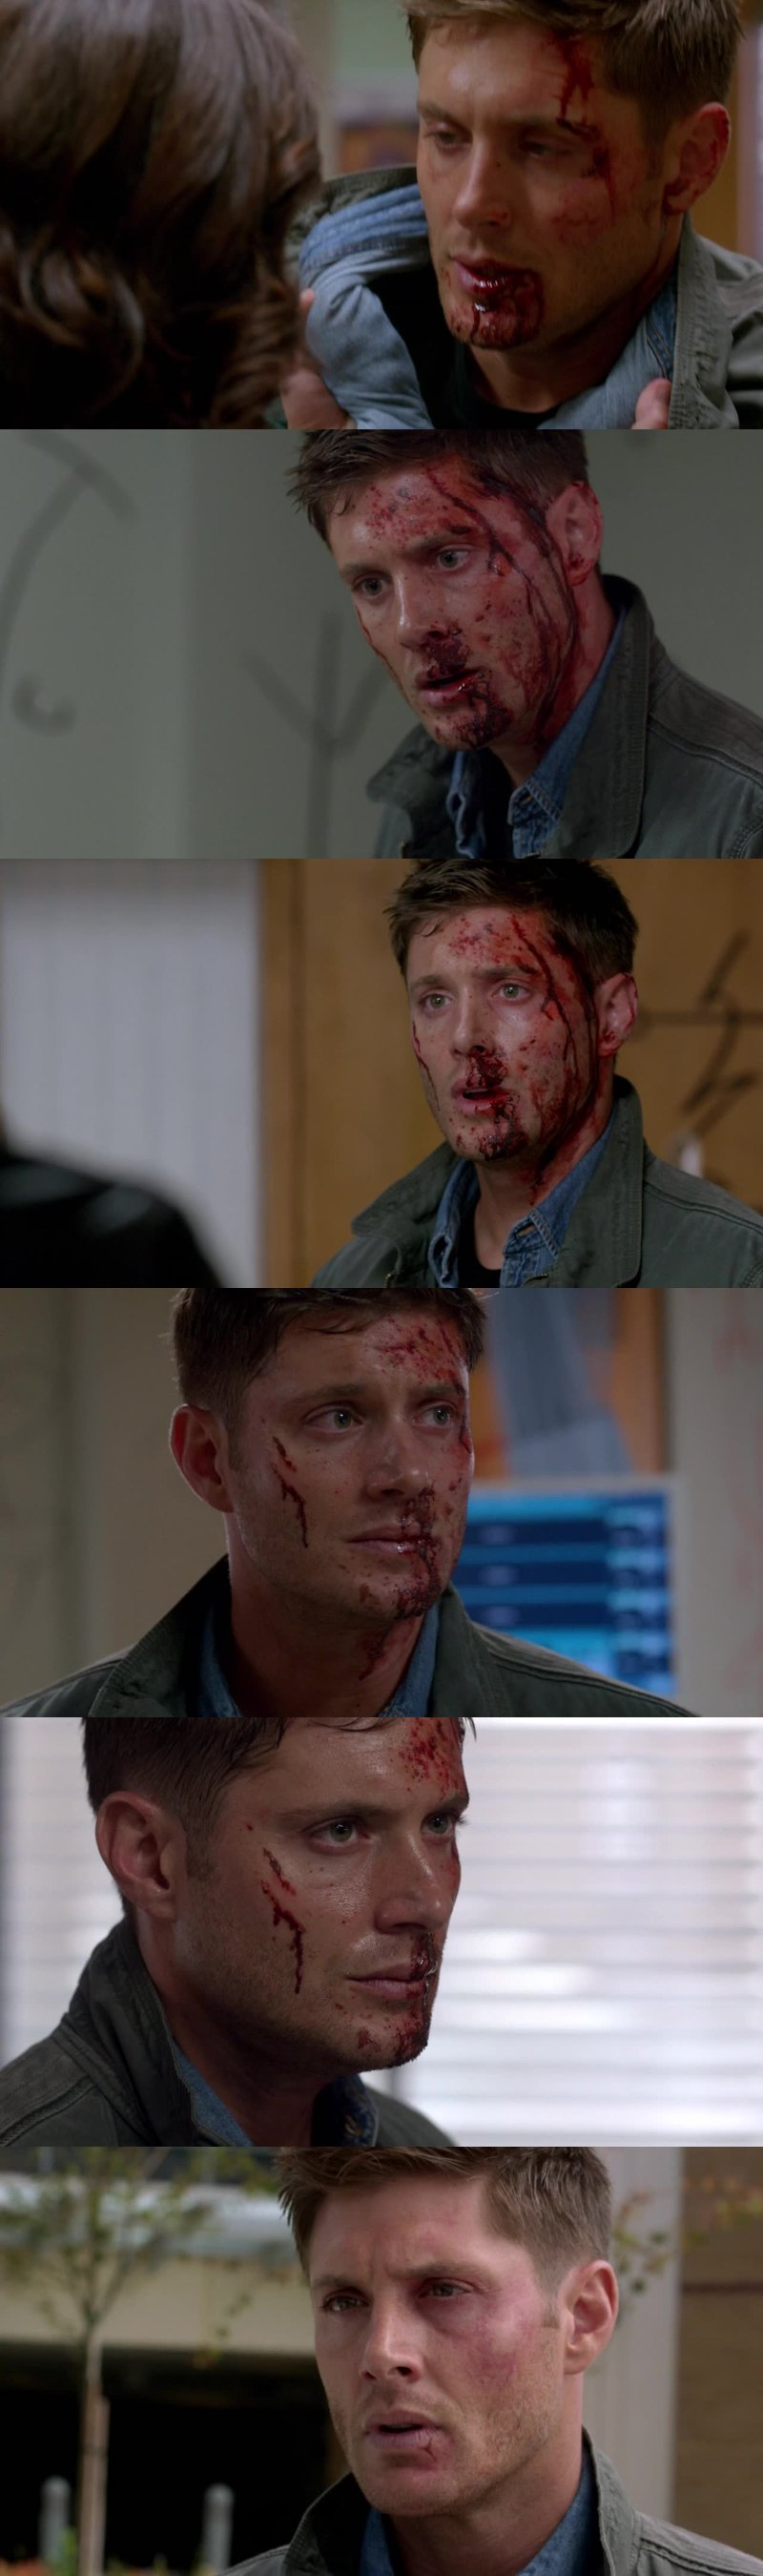 8 seasons and I still love him so much... He is so cute and badass in the same time... Even hurt... ☺️